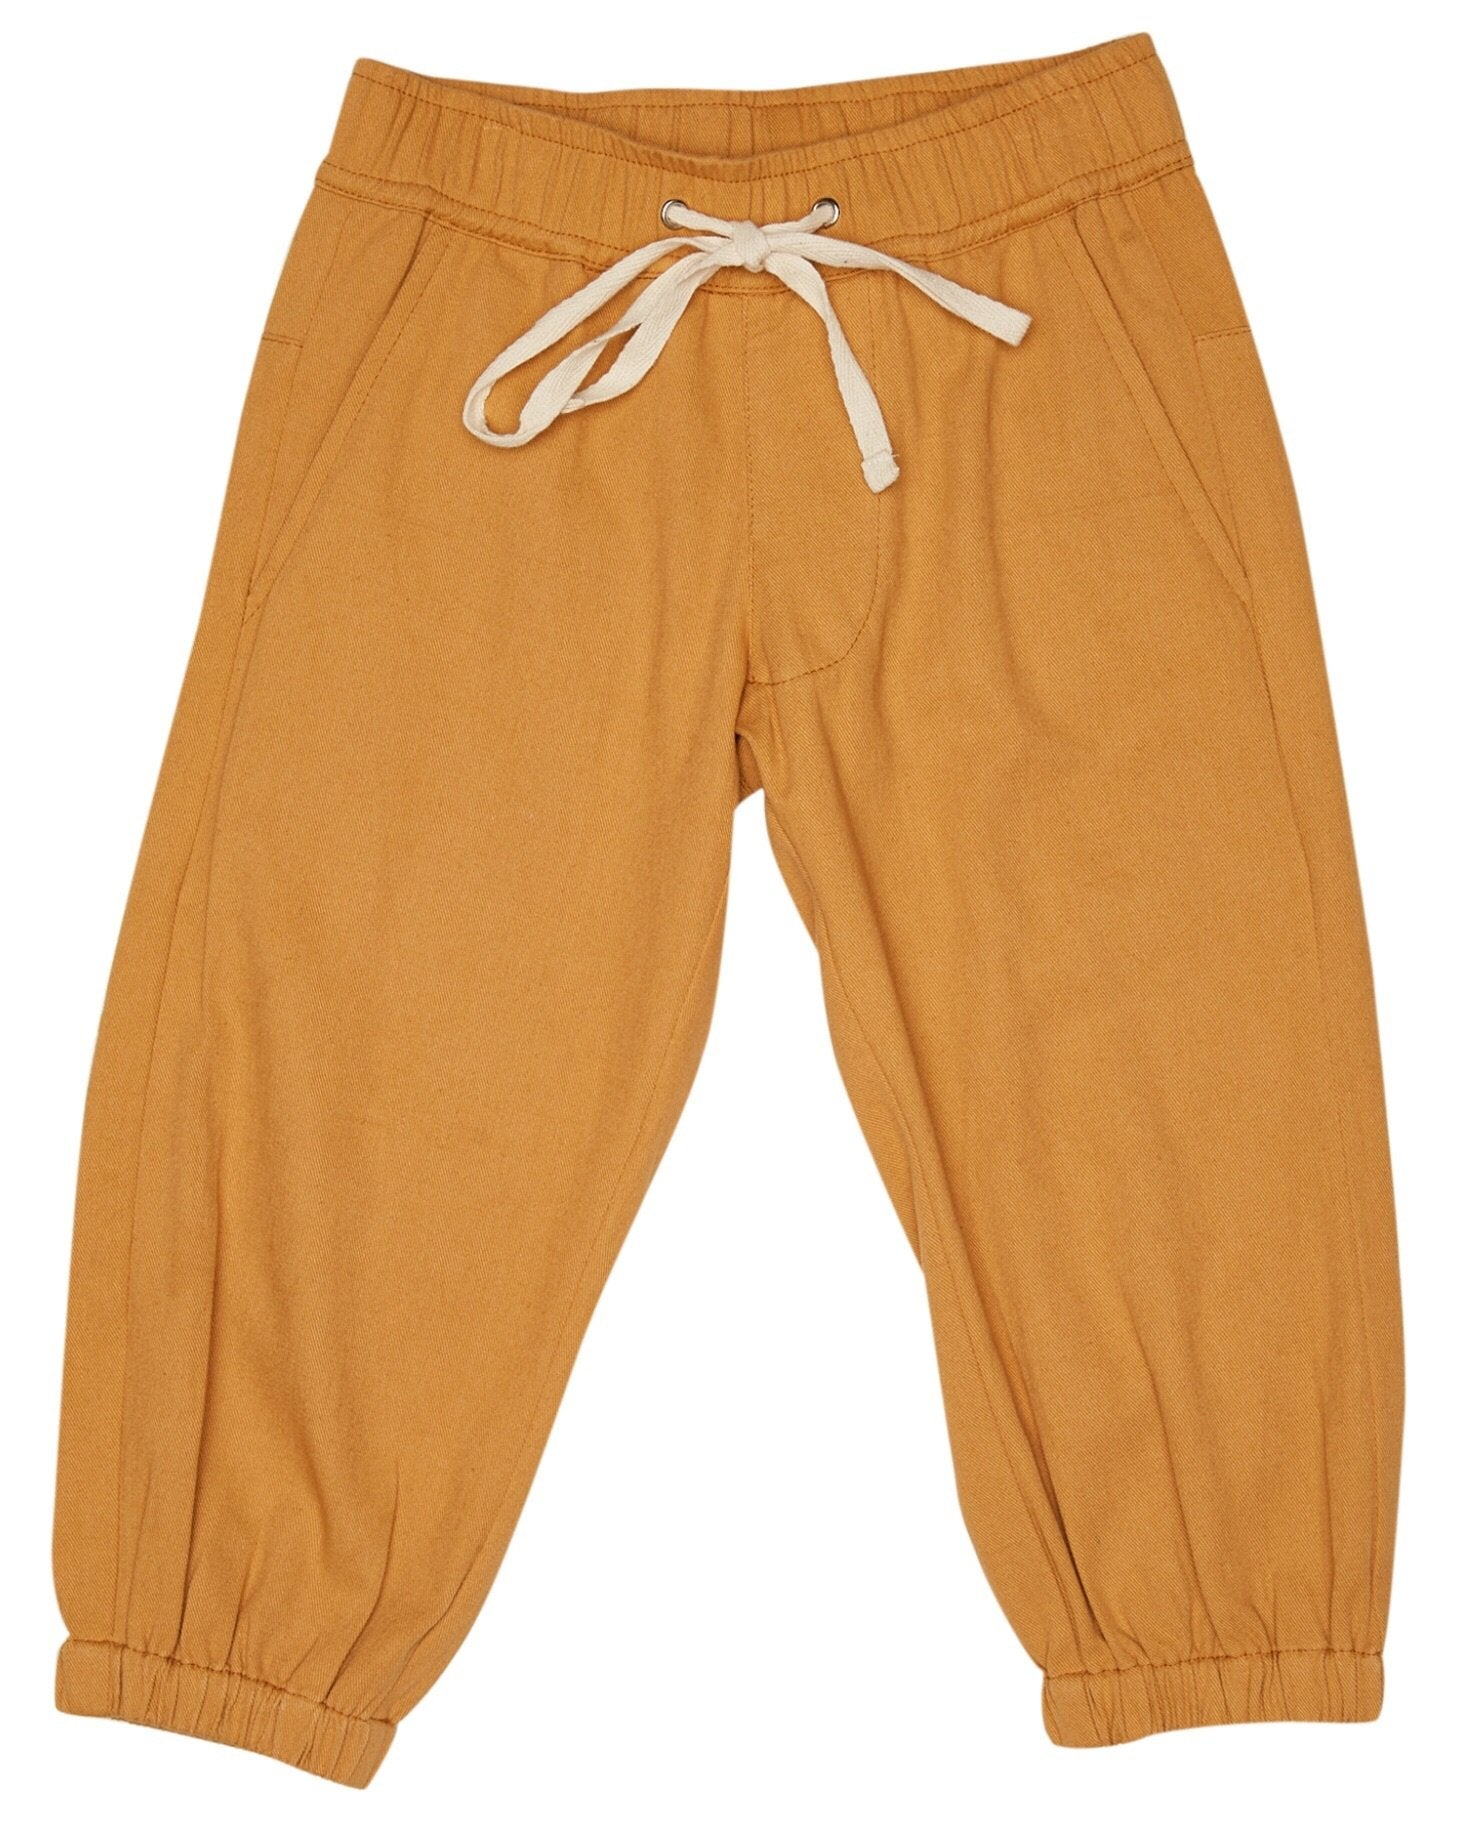 Island State Co - Surfer Chill Pant